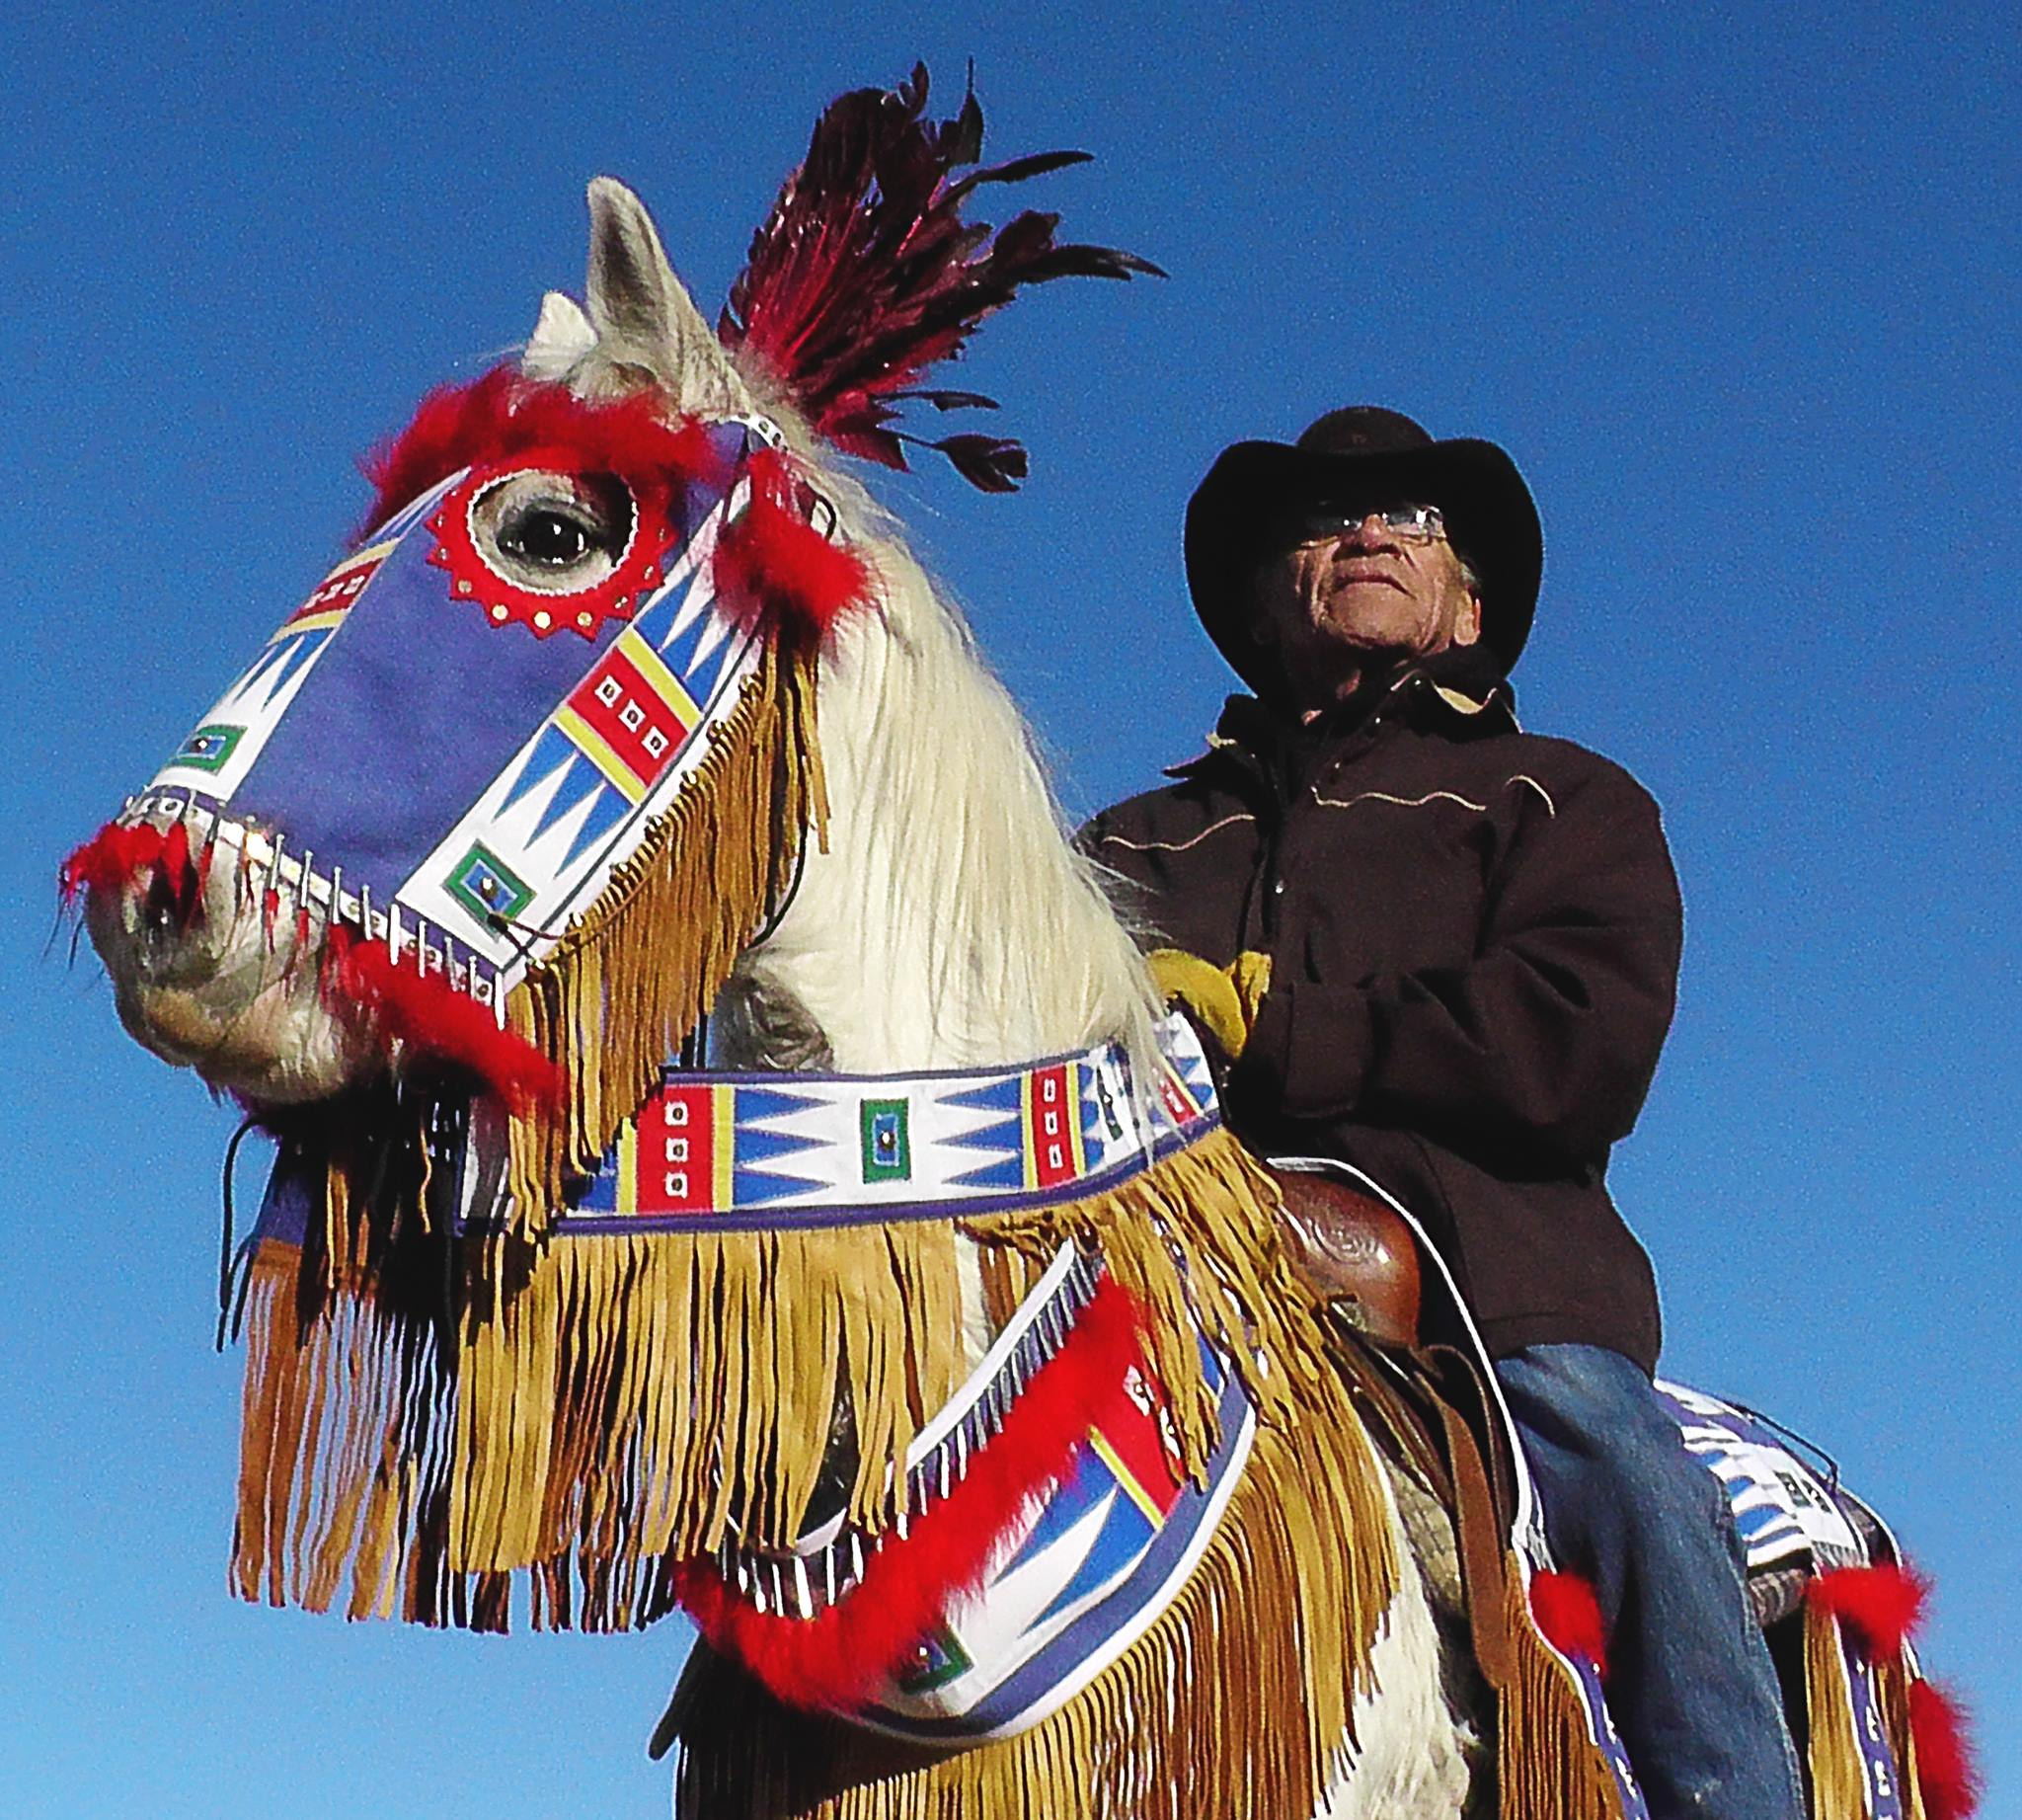 Lakota Country Times: Exhibit focuses on 'Horse Nation' traditions